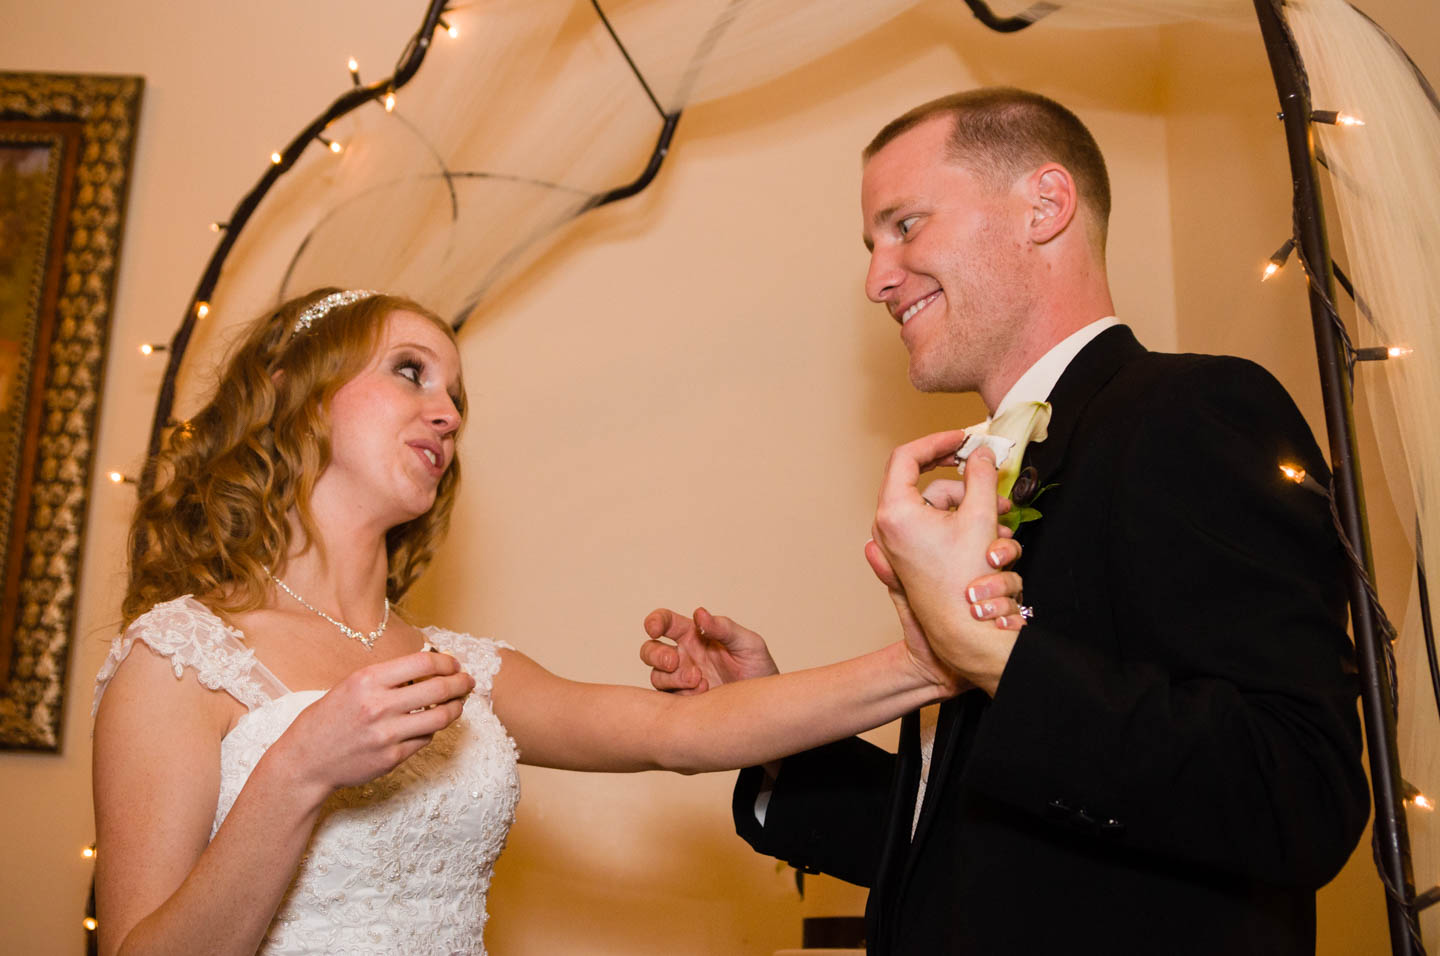 Bride begs groom not to smash the wedding cake into her face